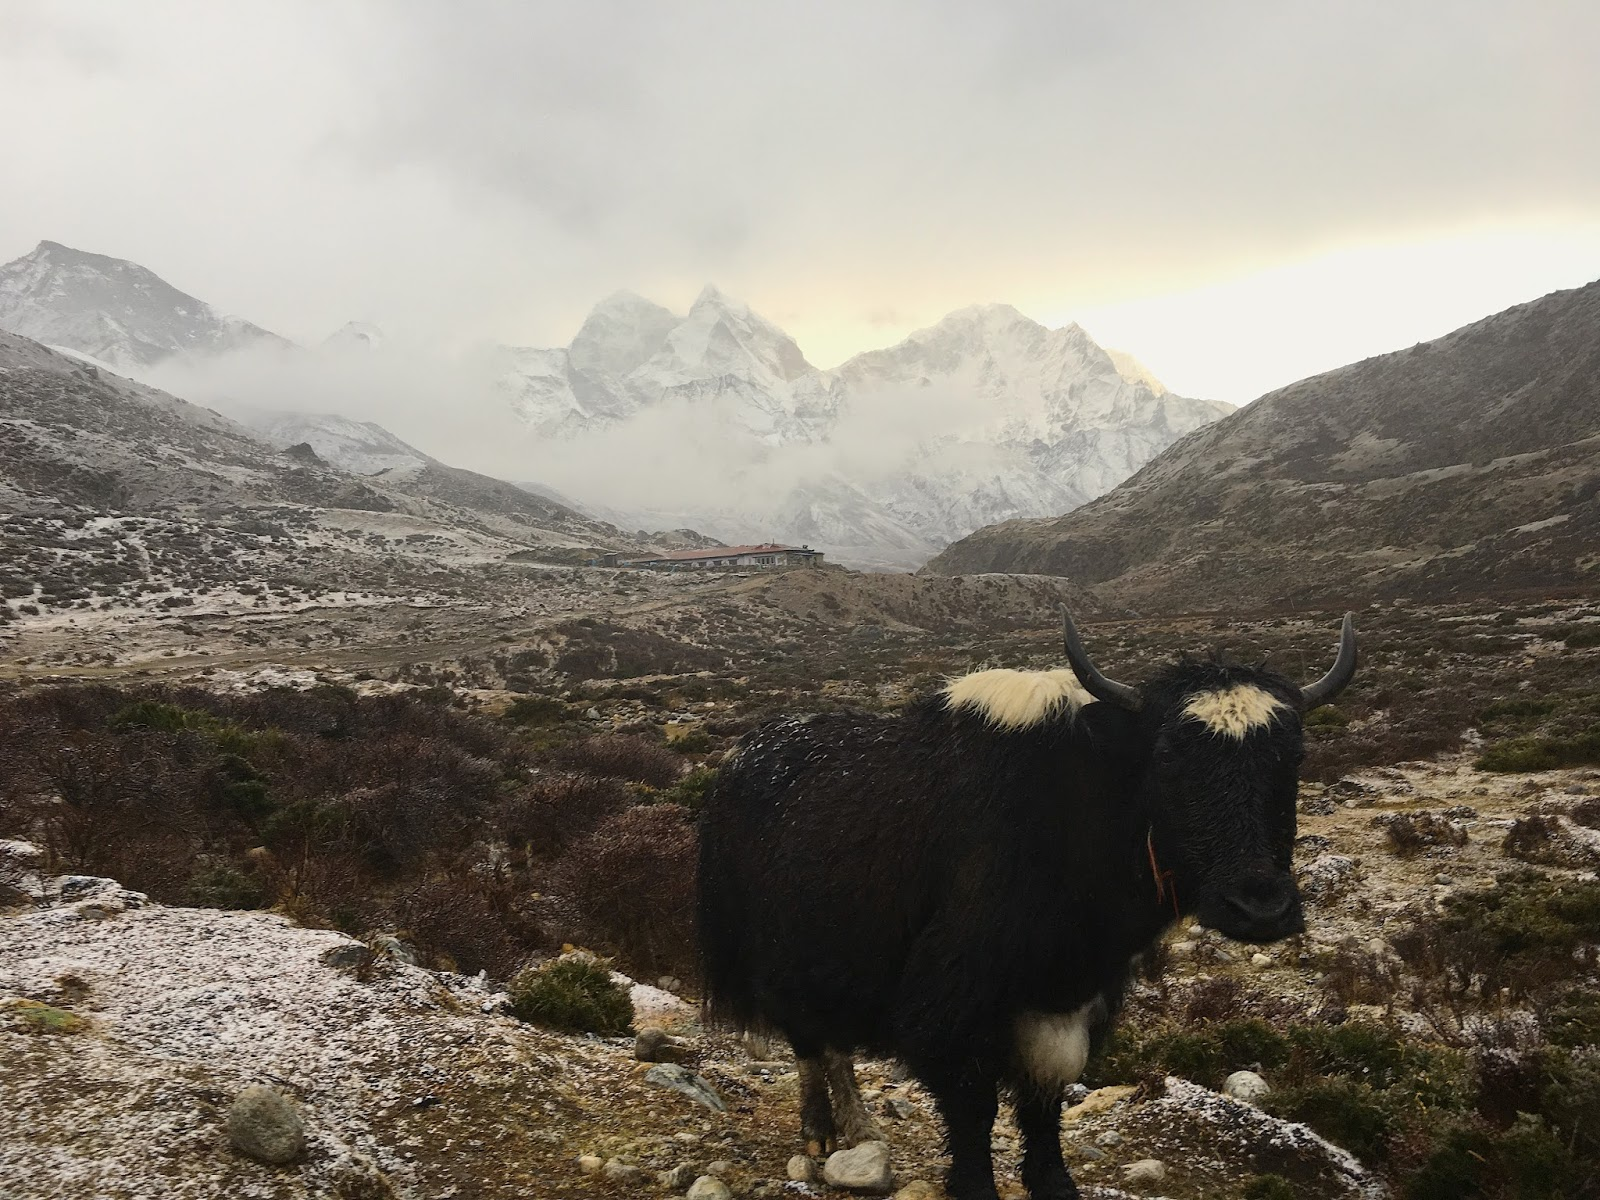 Planning your trek to Everest Base Camp? Read more about what no one tells you about hiking to the base of the highest mountain in the world!